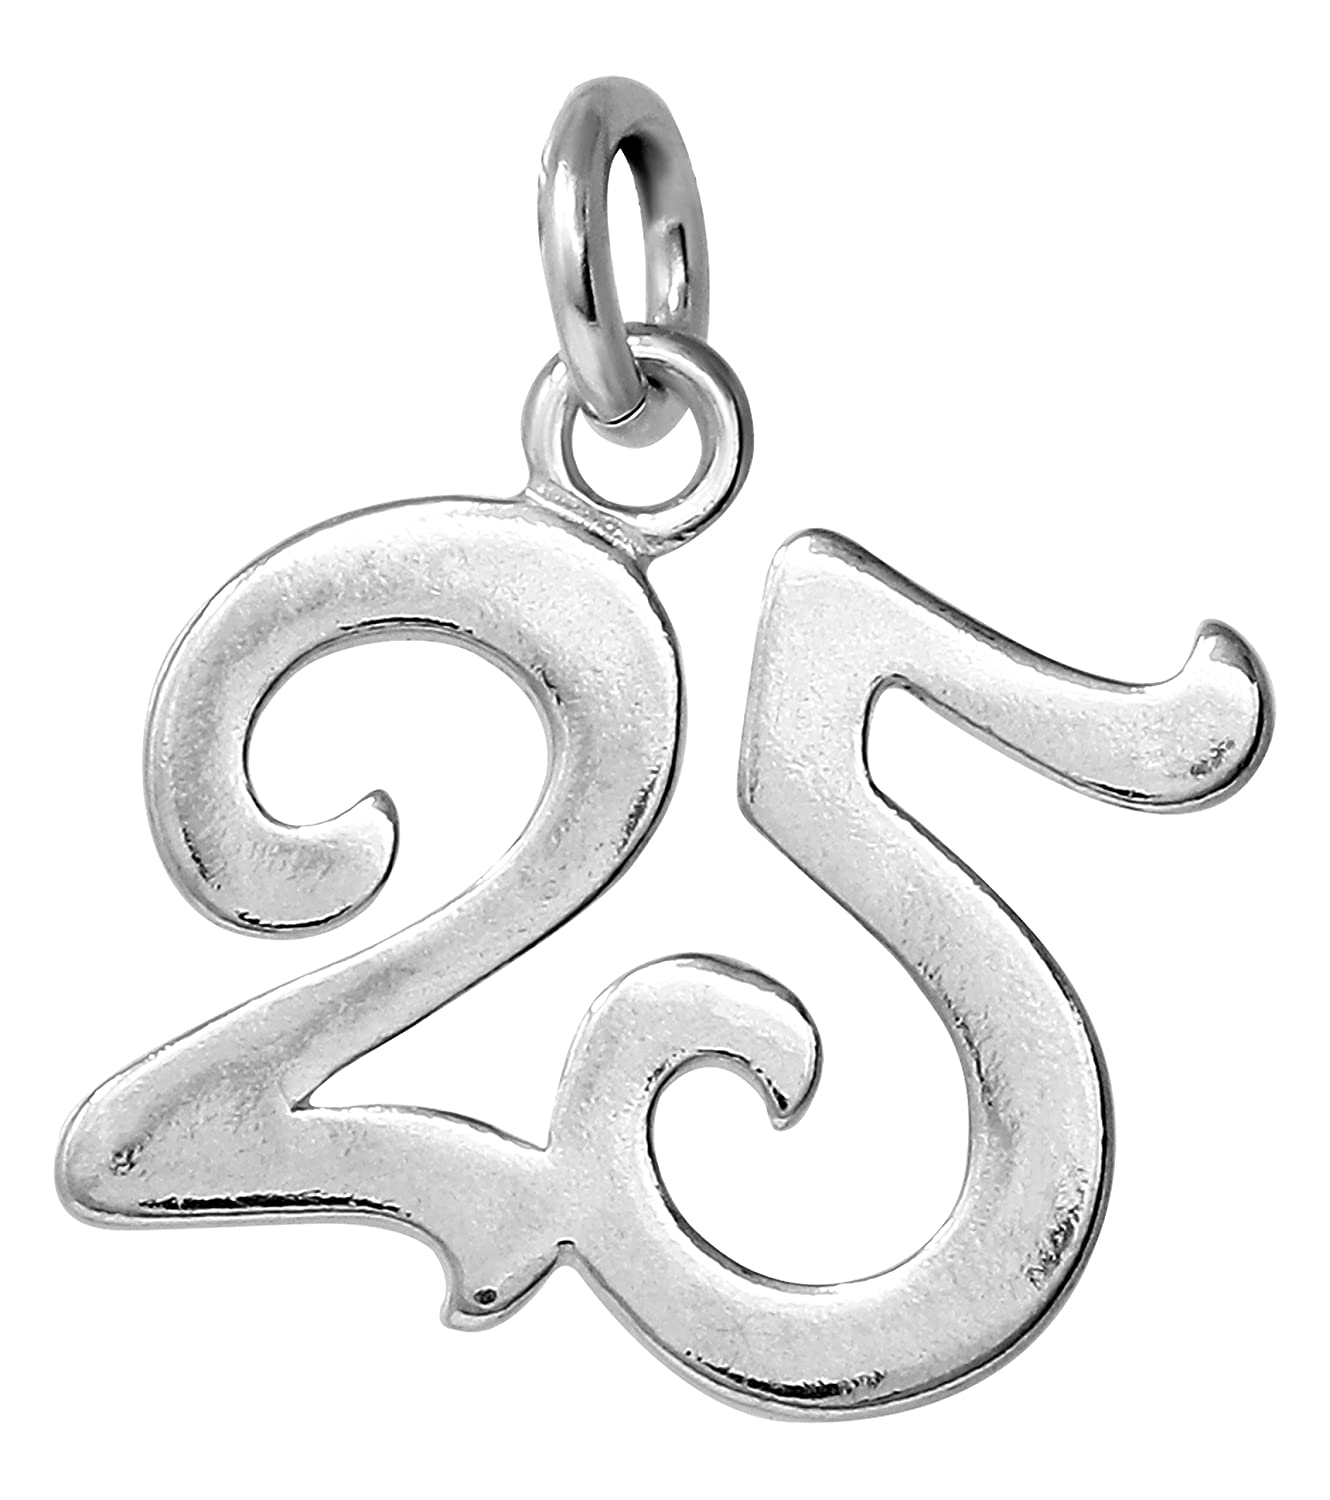 Raposa Elegance Sterling Silver Number 25 Charm Approximately 17.5 mm x 16 mm